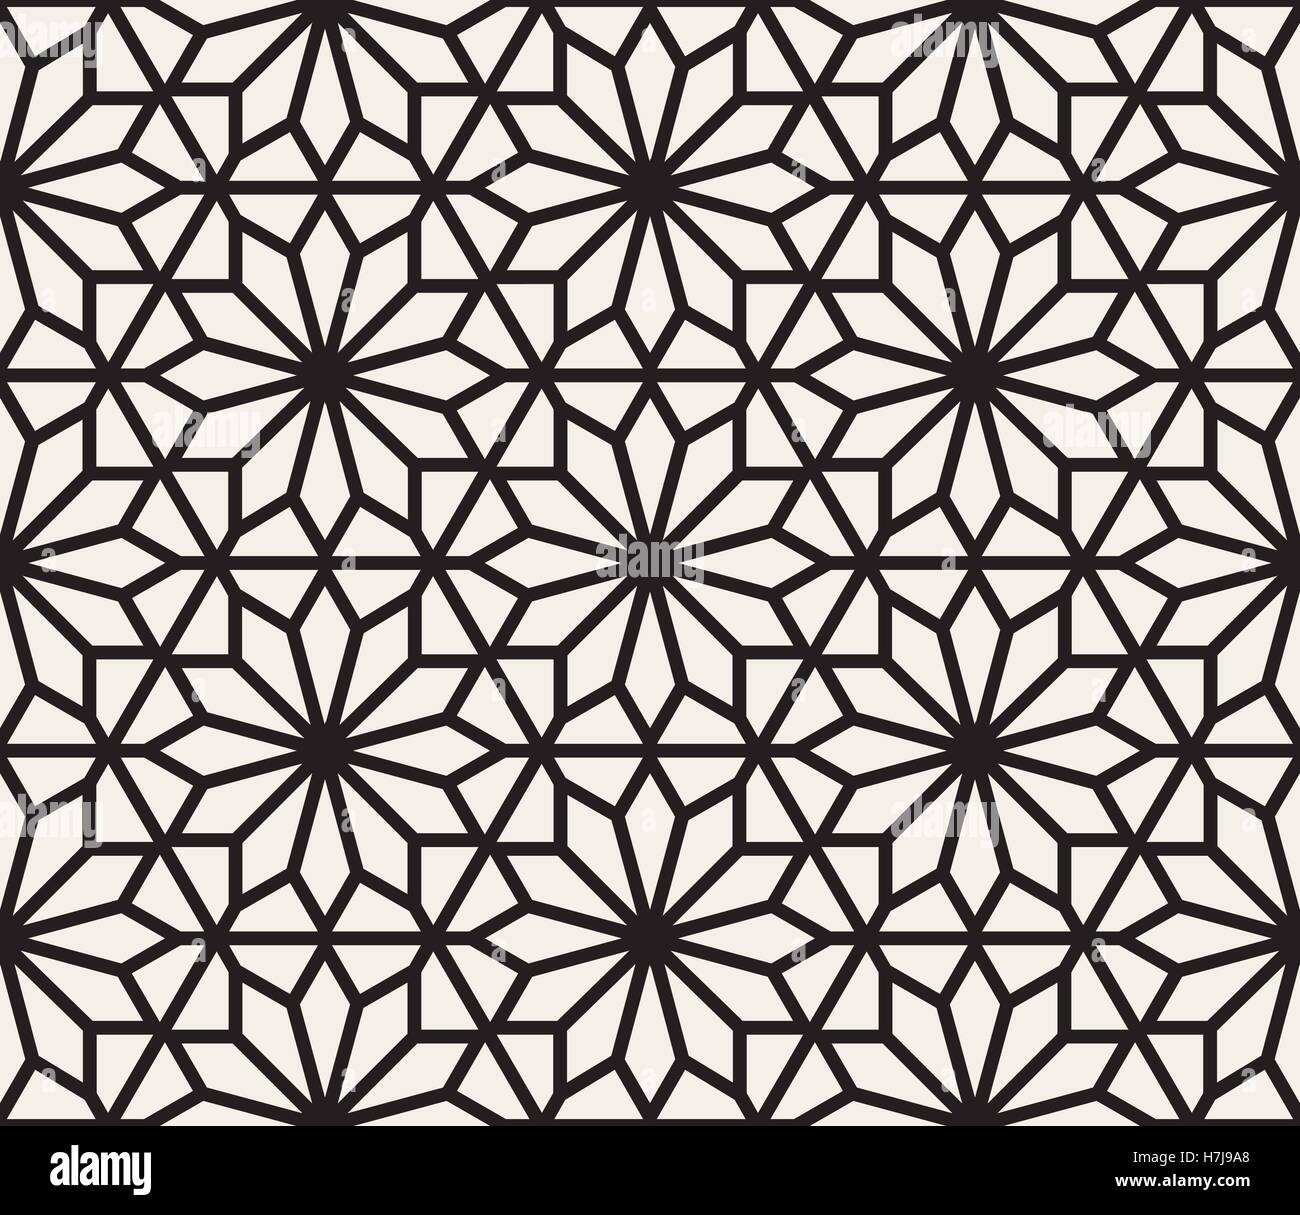 Vector Seamless Black And White Geometric Hexagon Lines Pattern Stock Vector Image Art Alamy,Pid Controller Design Tuning Parameters And Simulation For 4th Order Plant